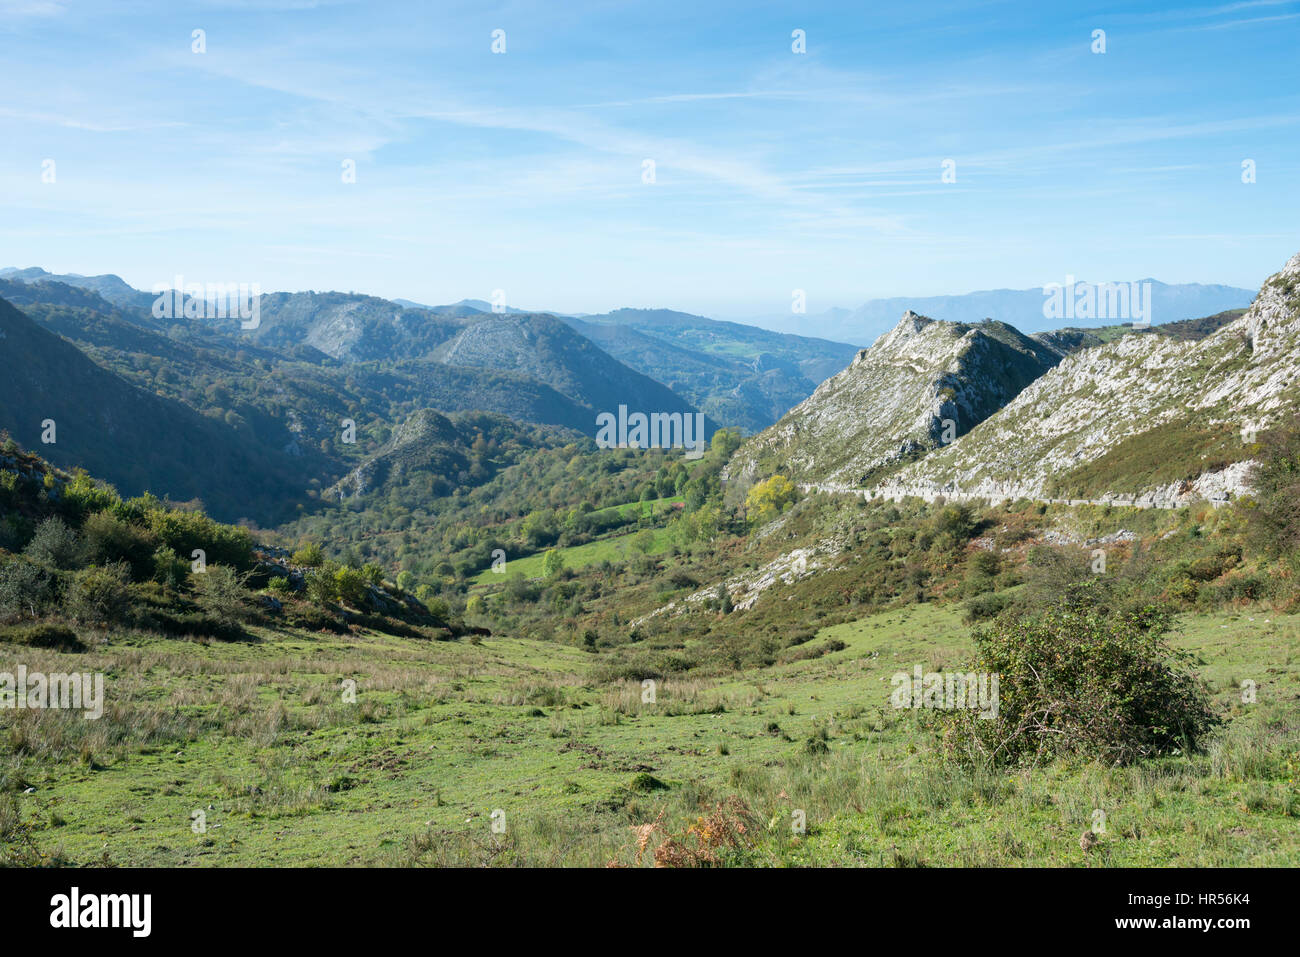 A landscape view of limestone hills and mountains in the Picos de Europa Asturias Spain - Stock Image